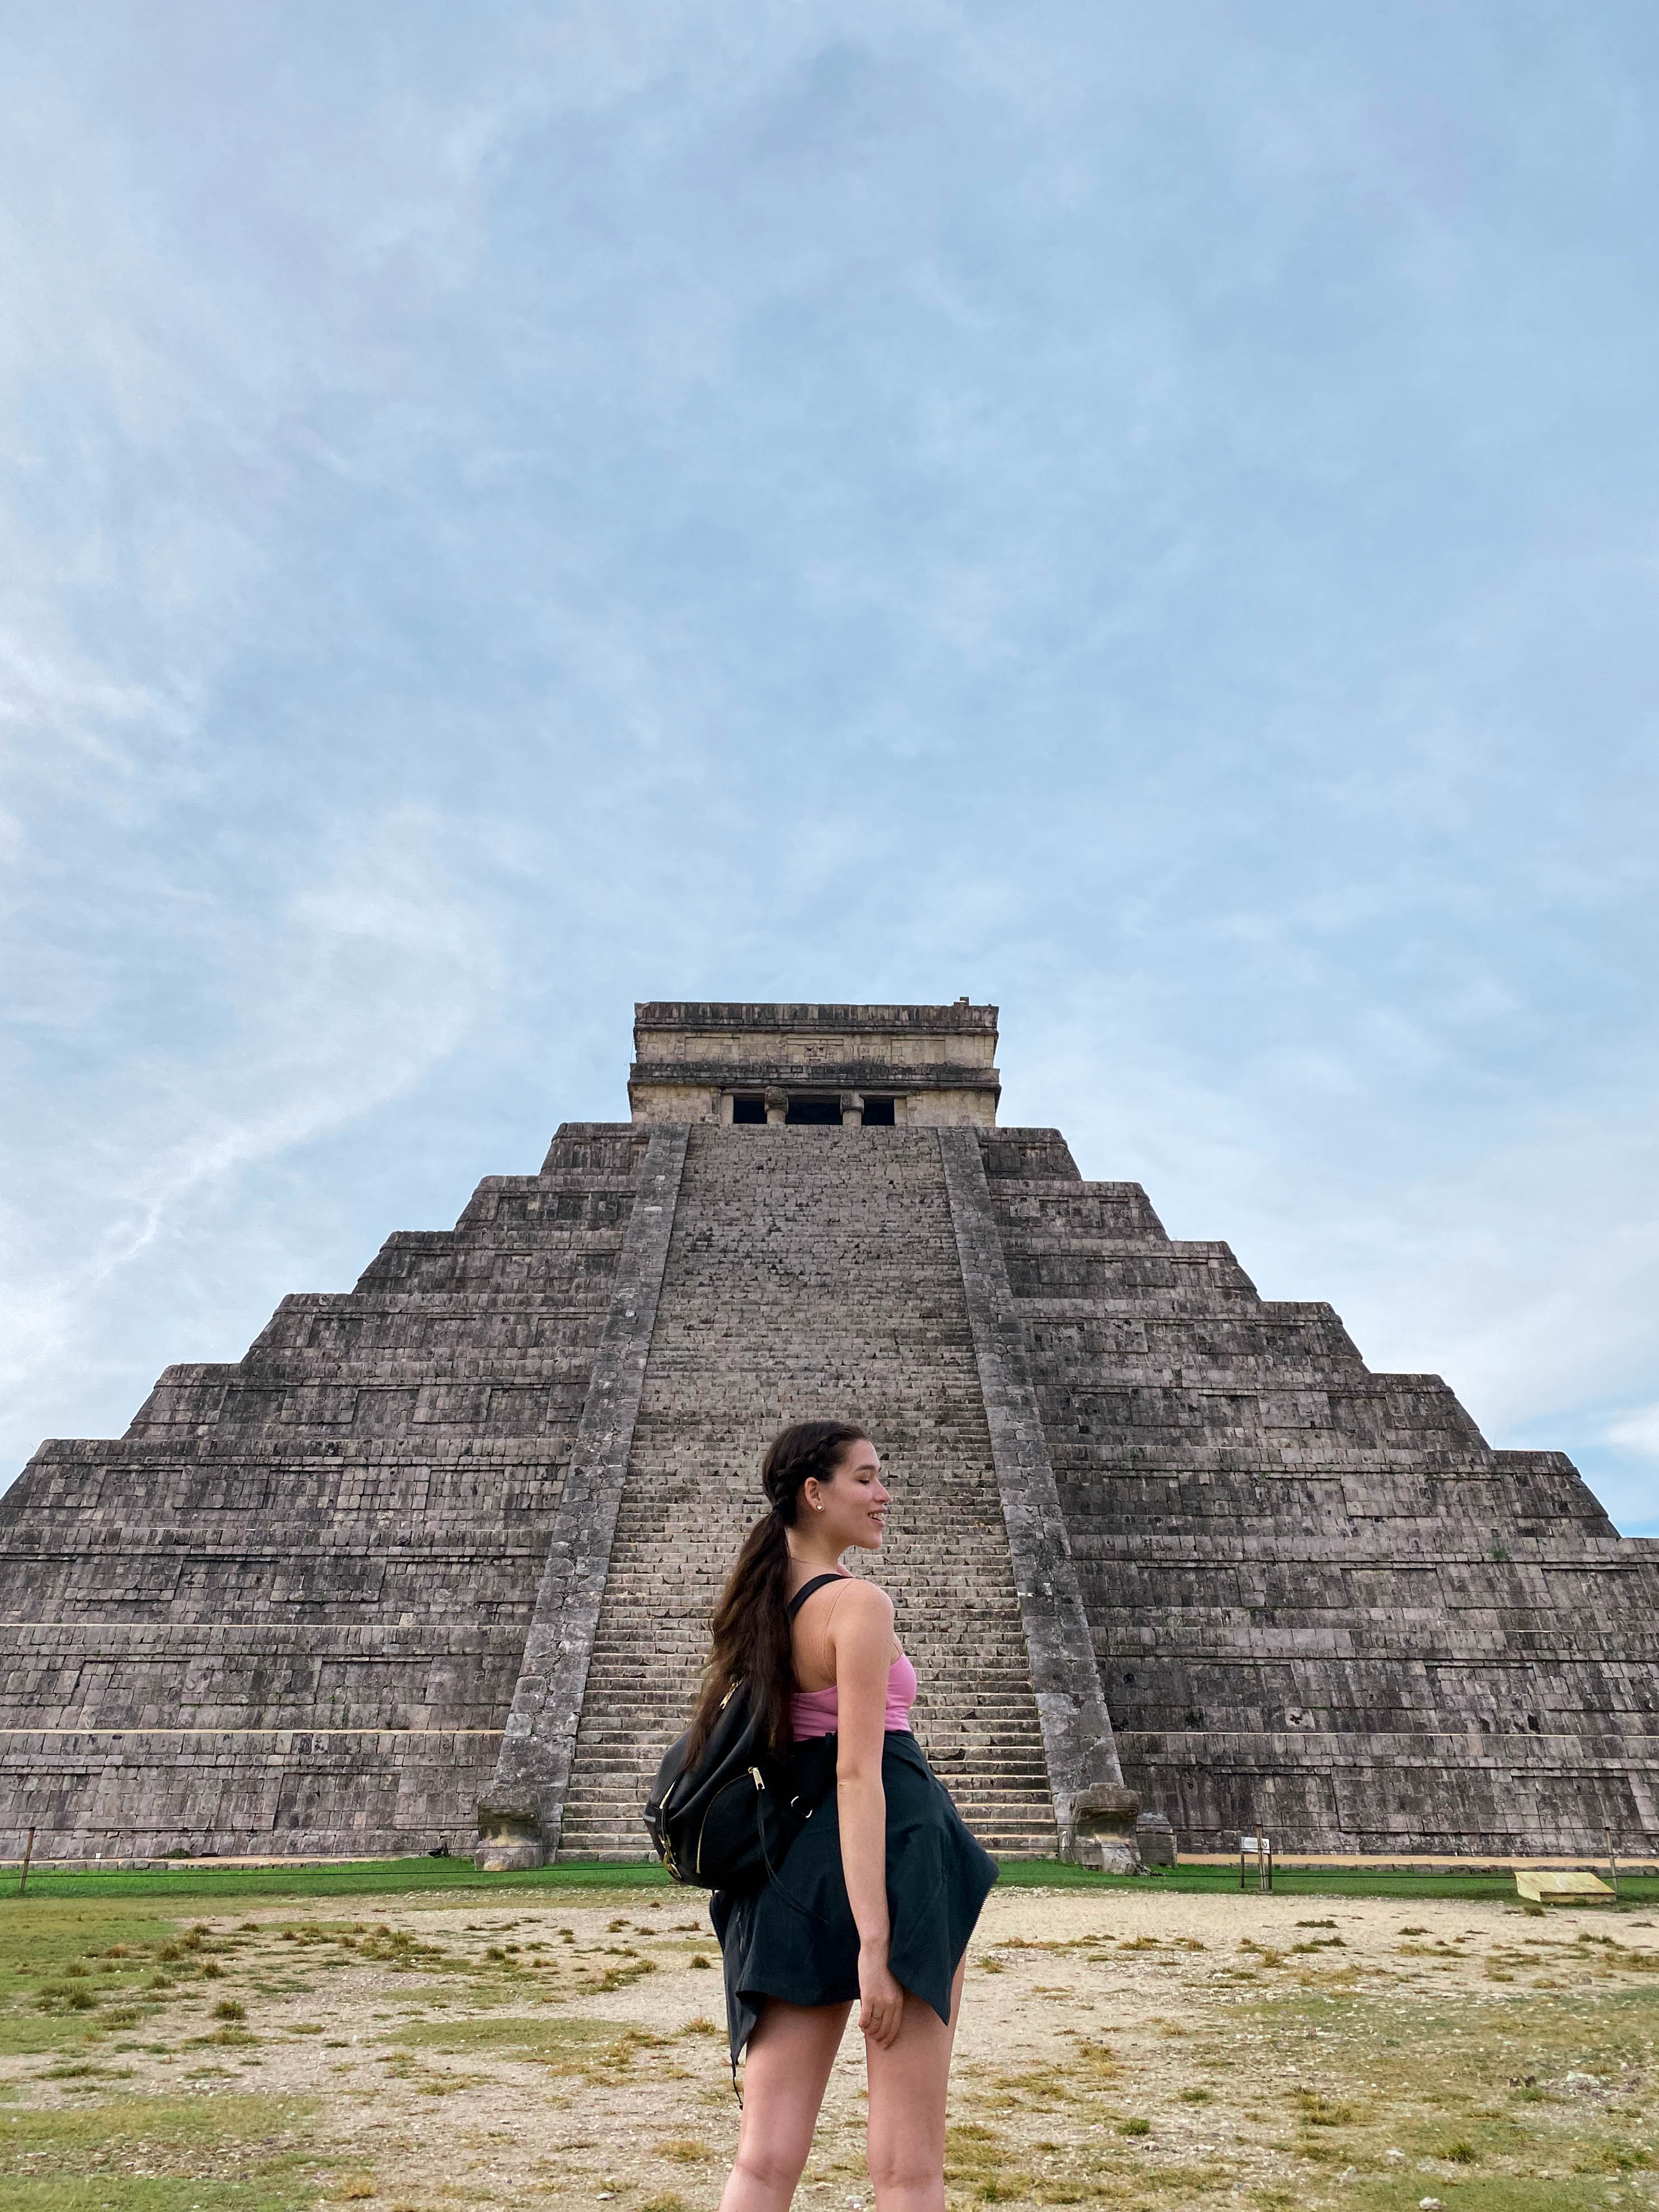 8 Things to Know Before Visiting Chichen Itza